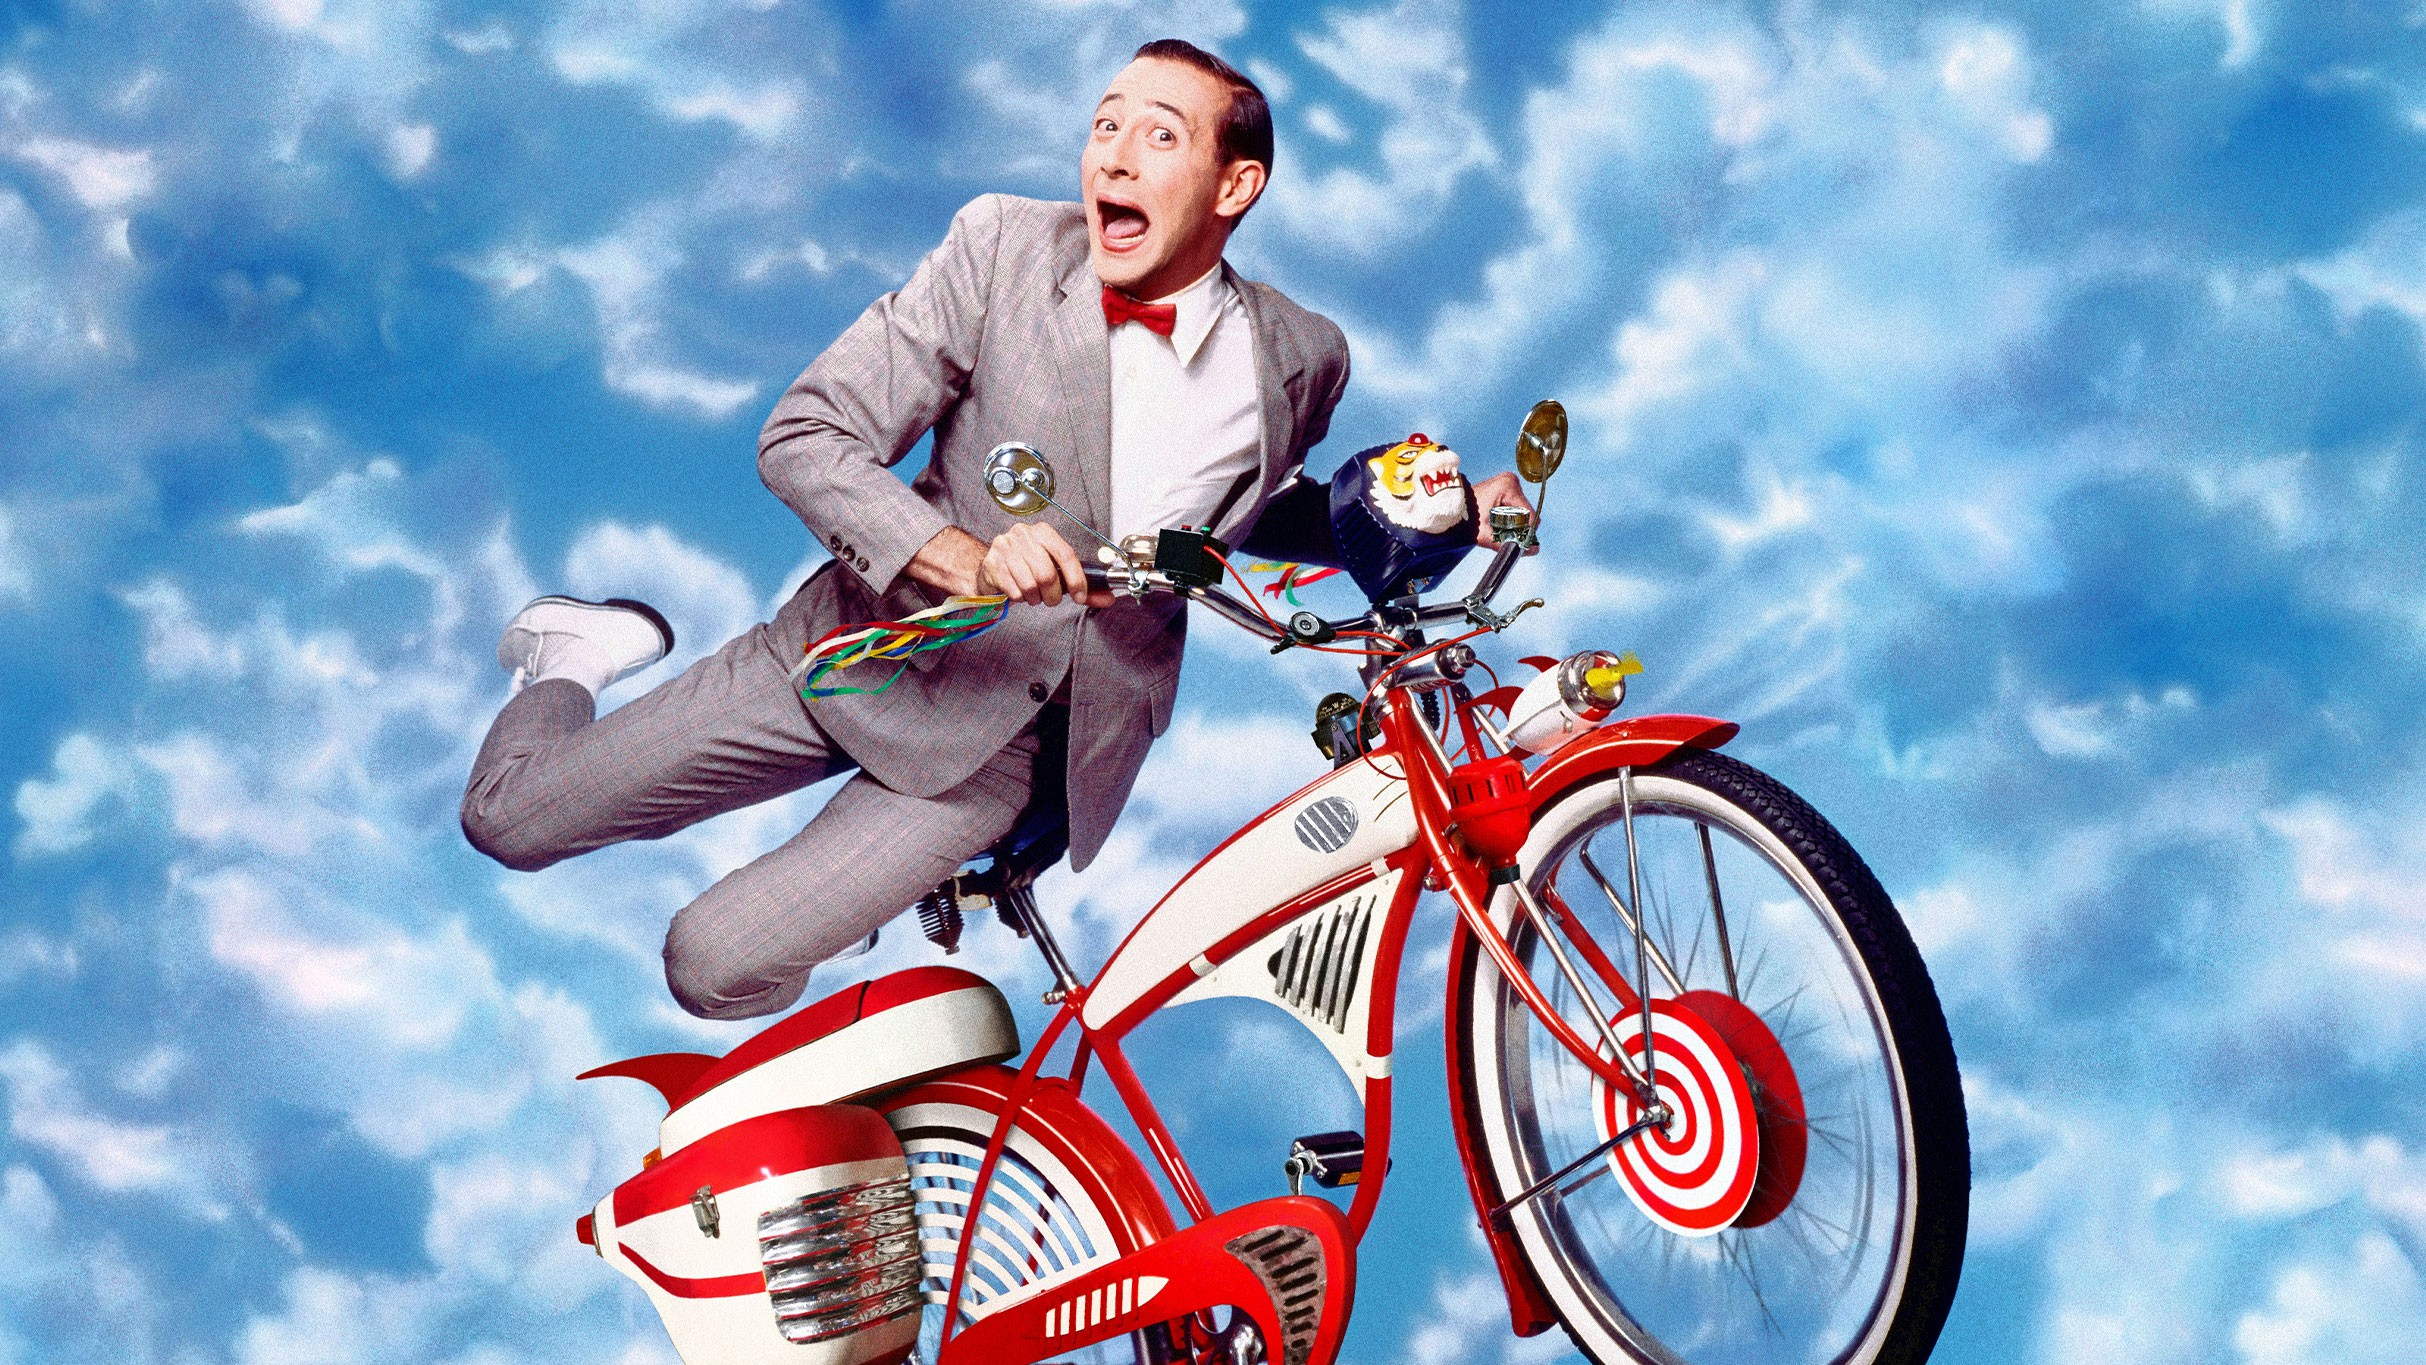 10 Pee-wee's Big Adventure Quotes You Probably Say All the Time